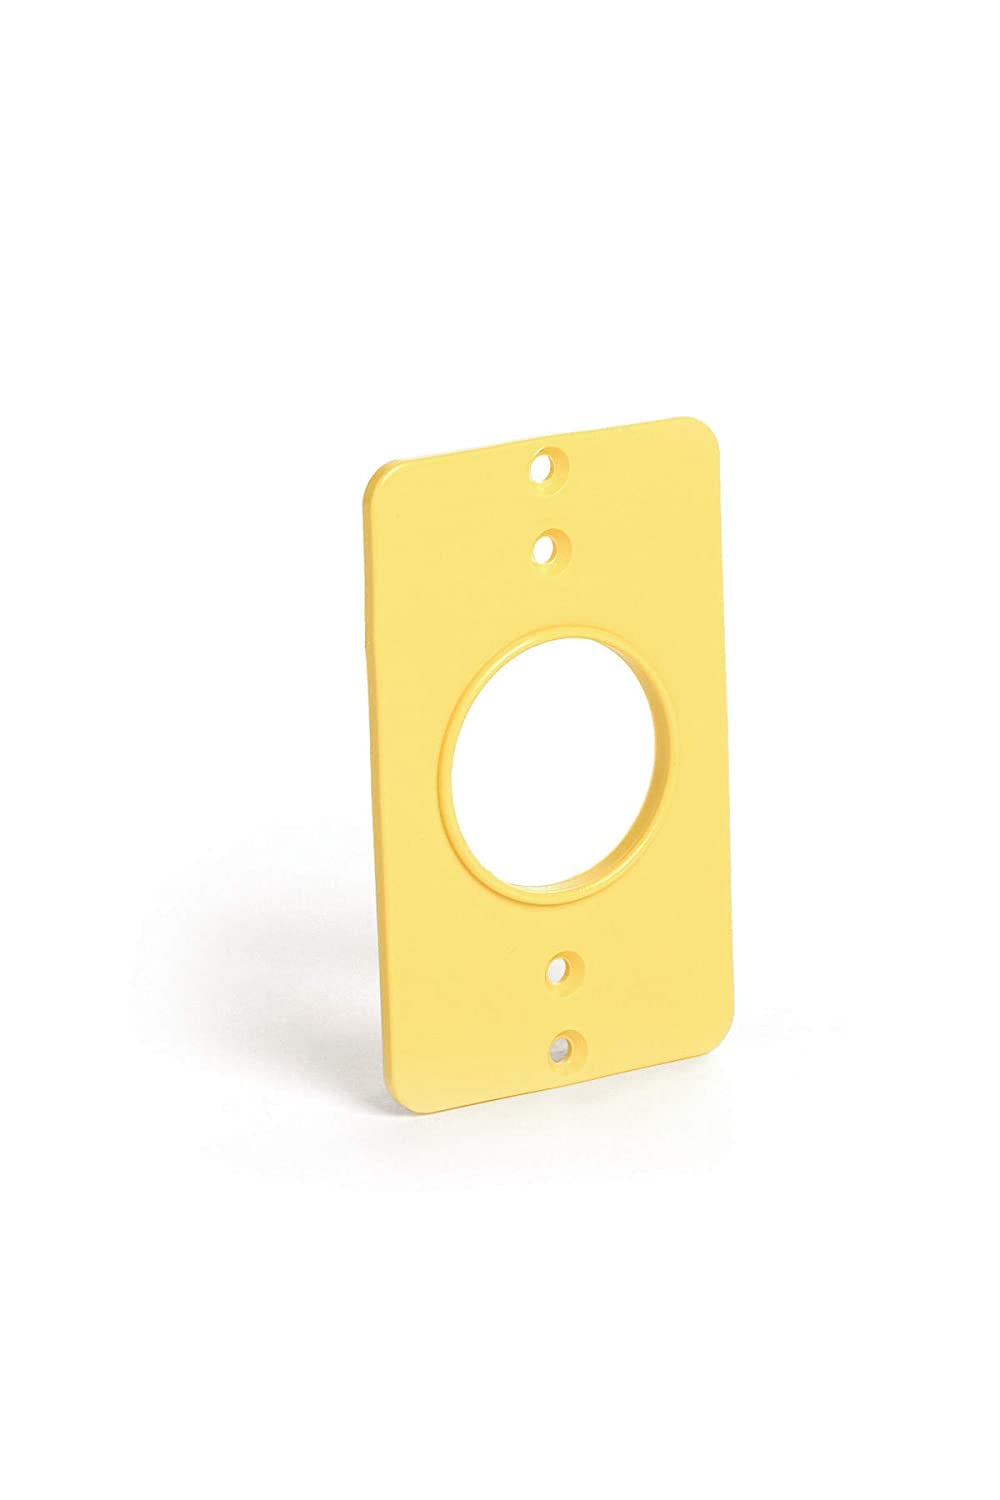 Woodhead 3052 Super-Safeway Outlet Box Coverplate, Single Receptacle Opening, 1.39